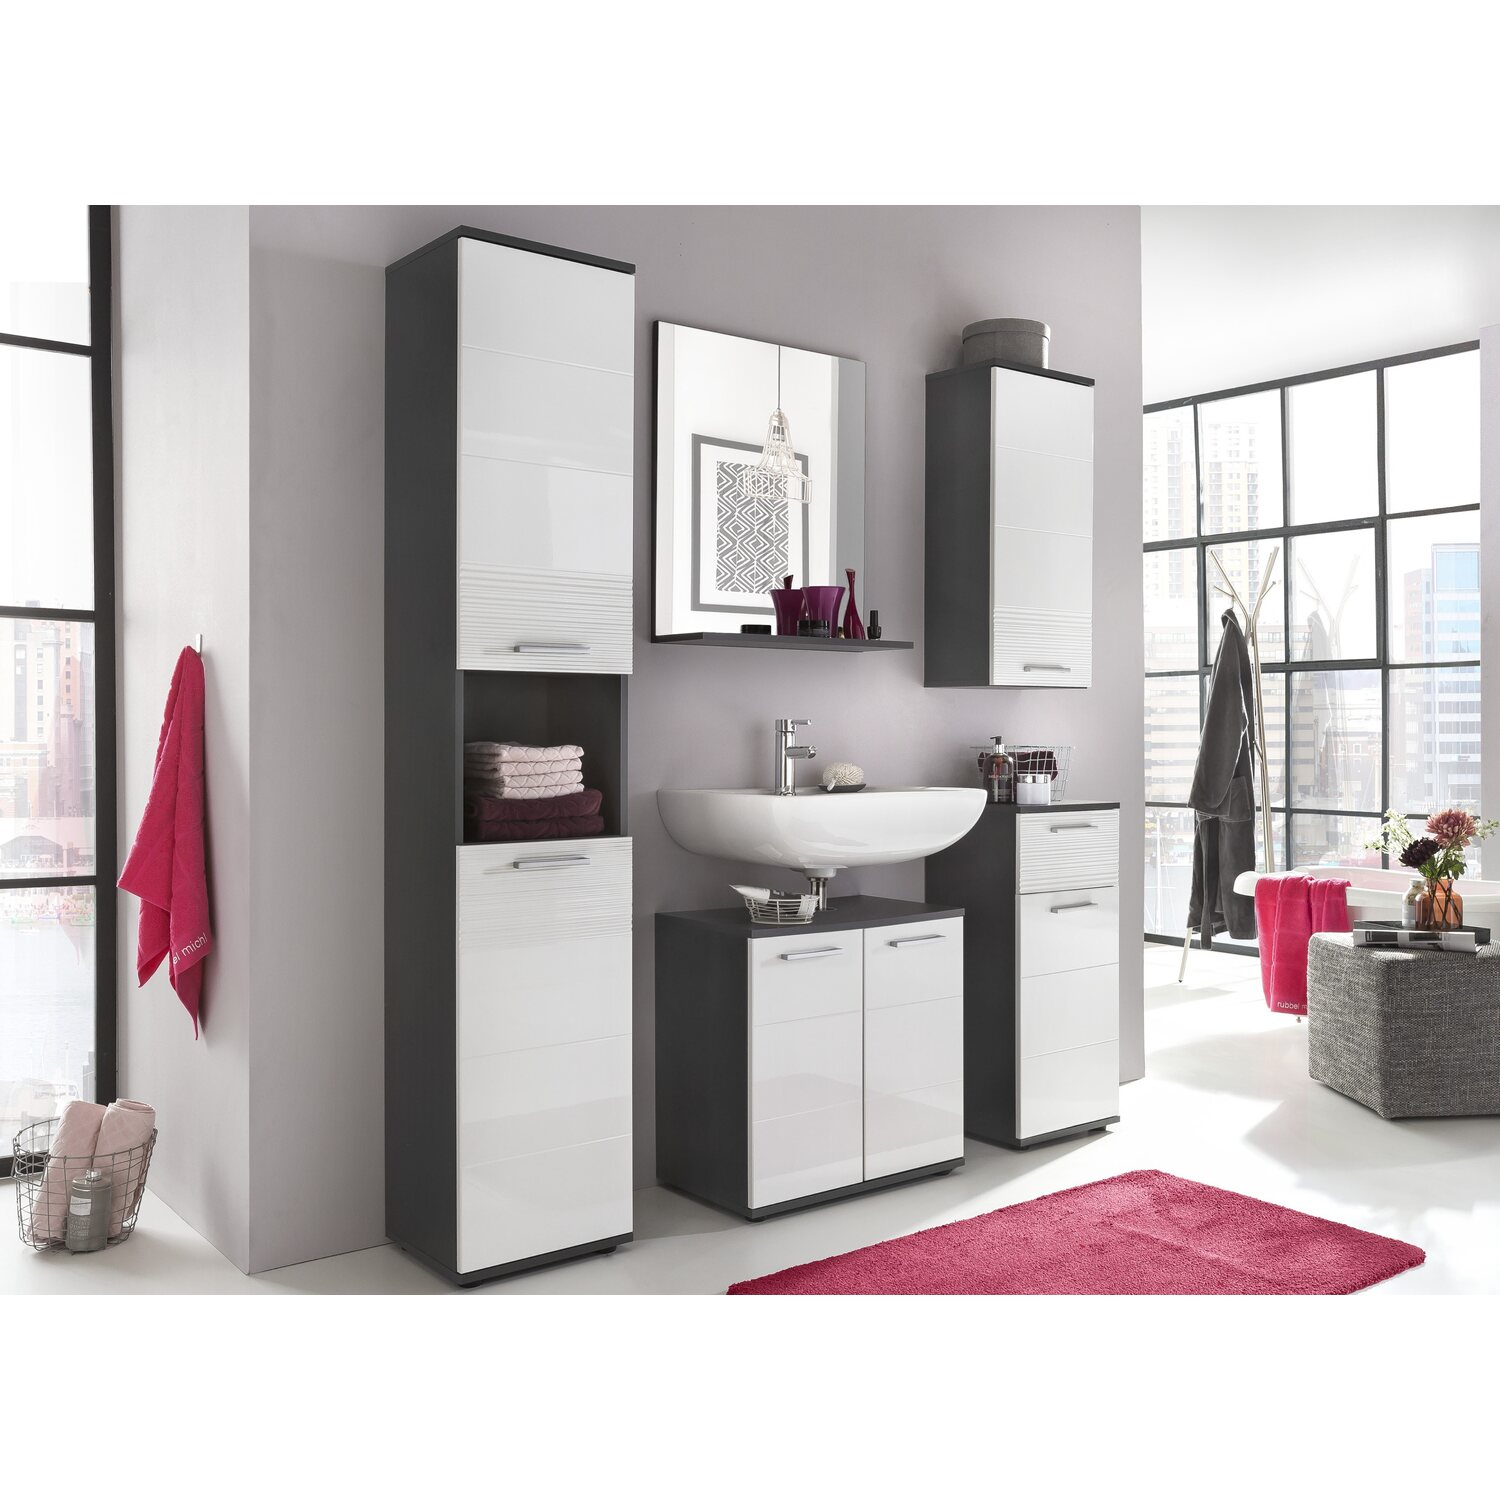 badspiegel mit ablage smart 60 cm x 71 cm x 20 cm wei grau kaufen bei obi. Black Bedroom Furniture Sets. Home Design Ideas